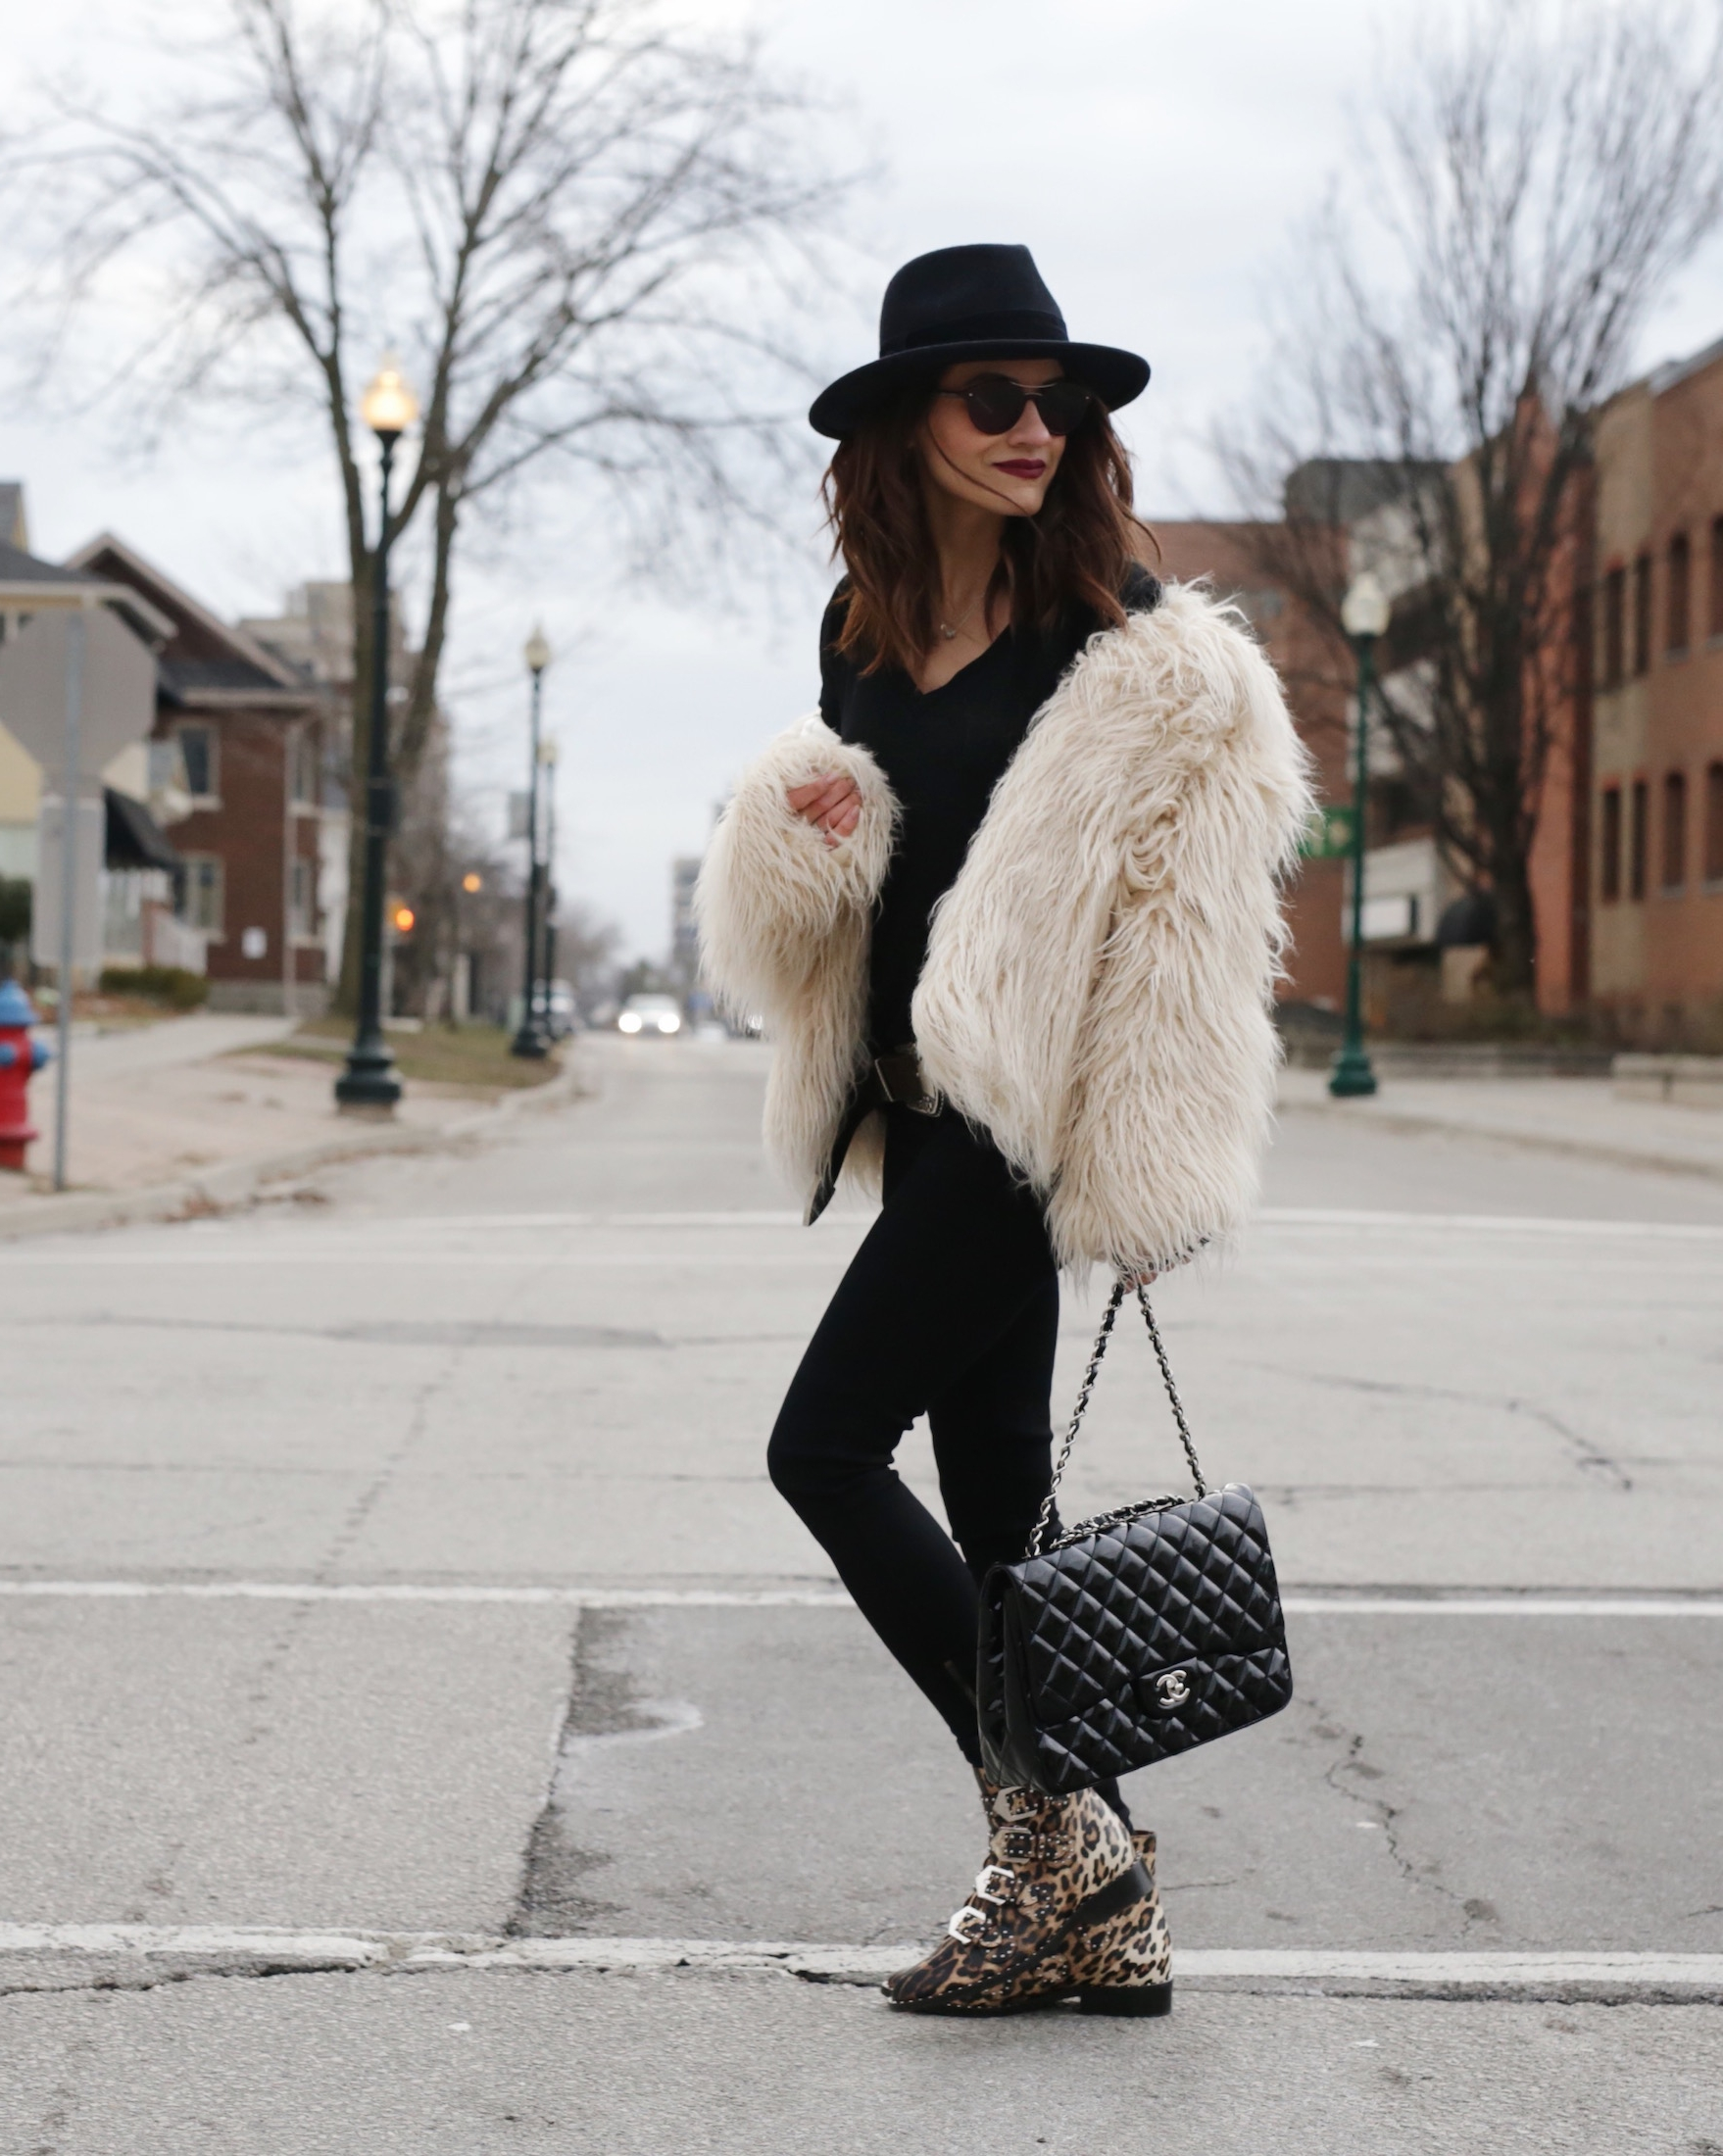 givenchy studded leopard boots, faux fur jacket and patent leather chanel bag - woahstyle.com_5627.JPG